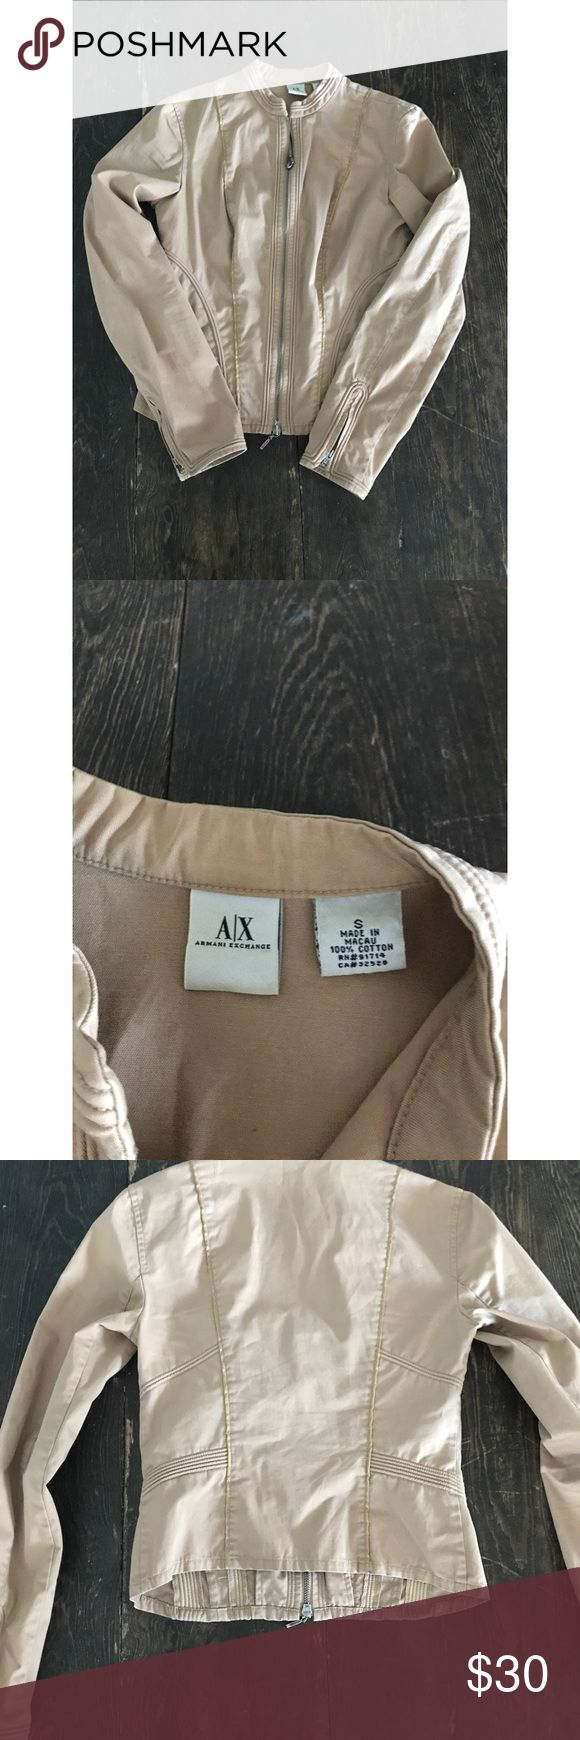 Armani exchange jacket Size small I'm good condition, no